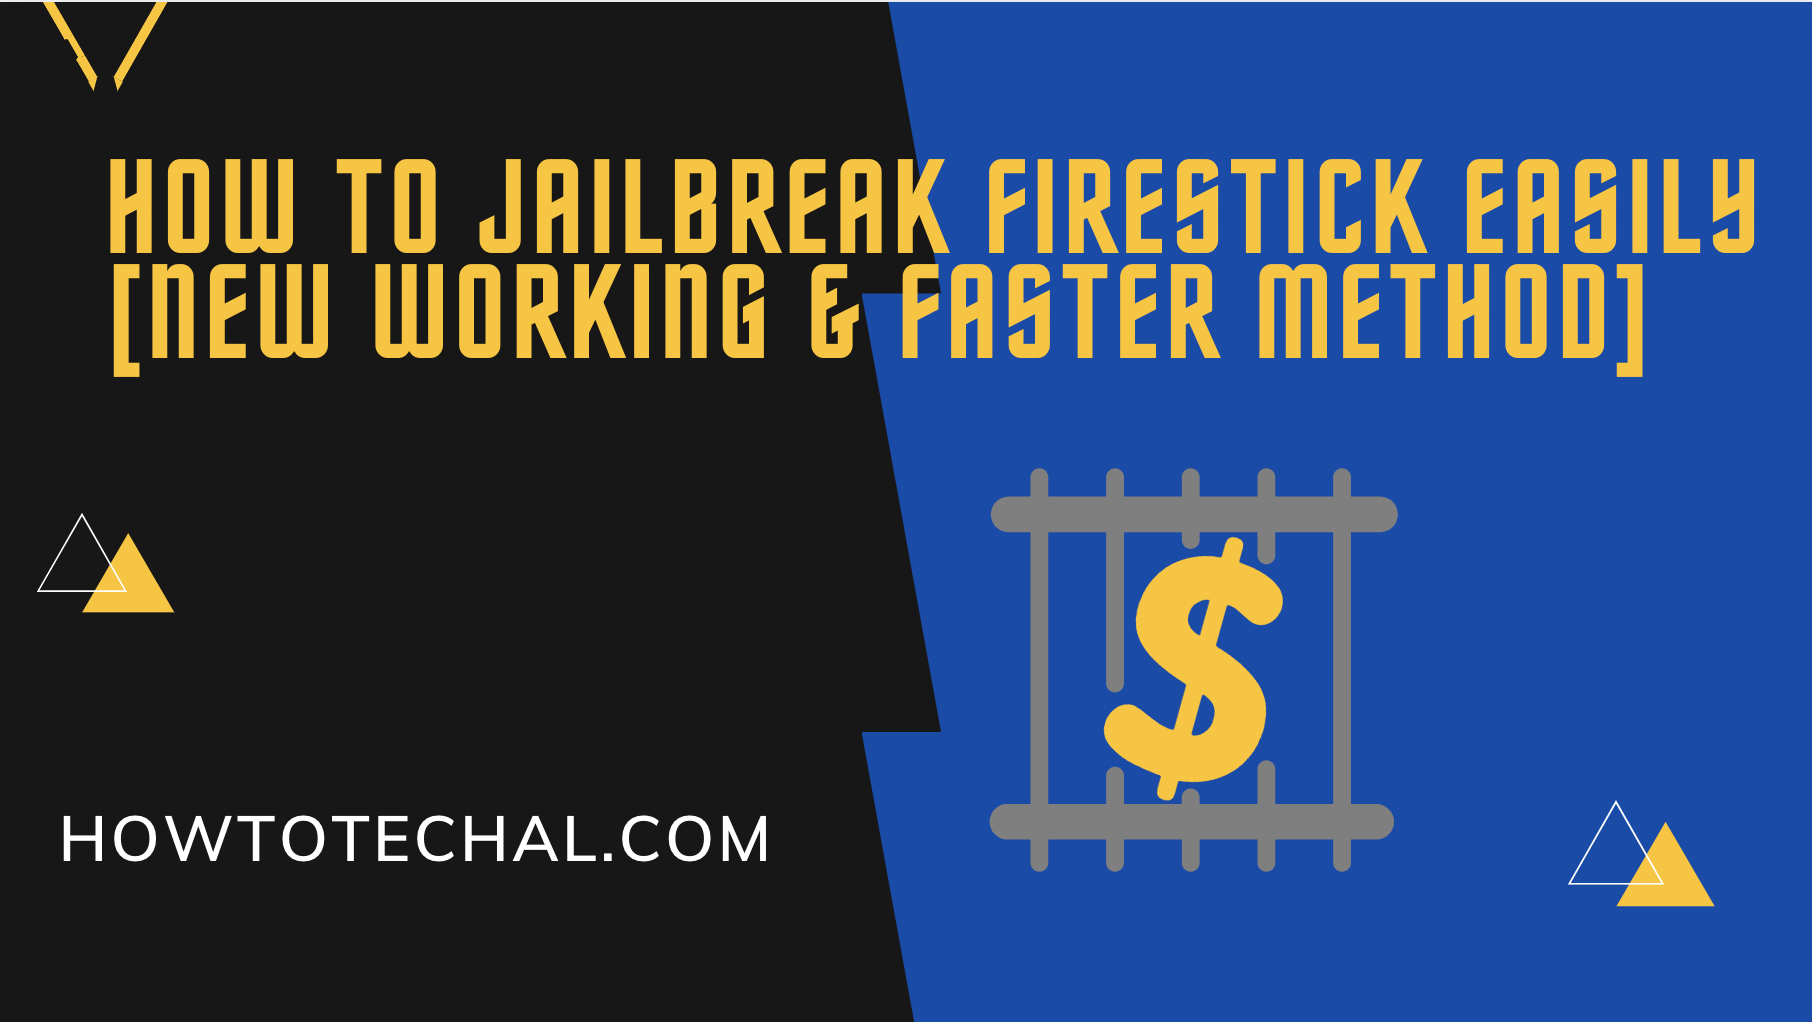 How to Jailbreak Firestick Easily [New Working & Faster Method]